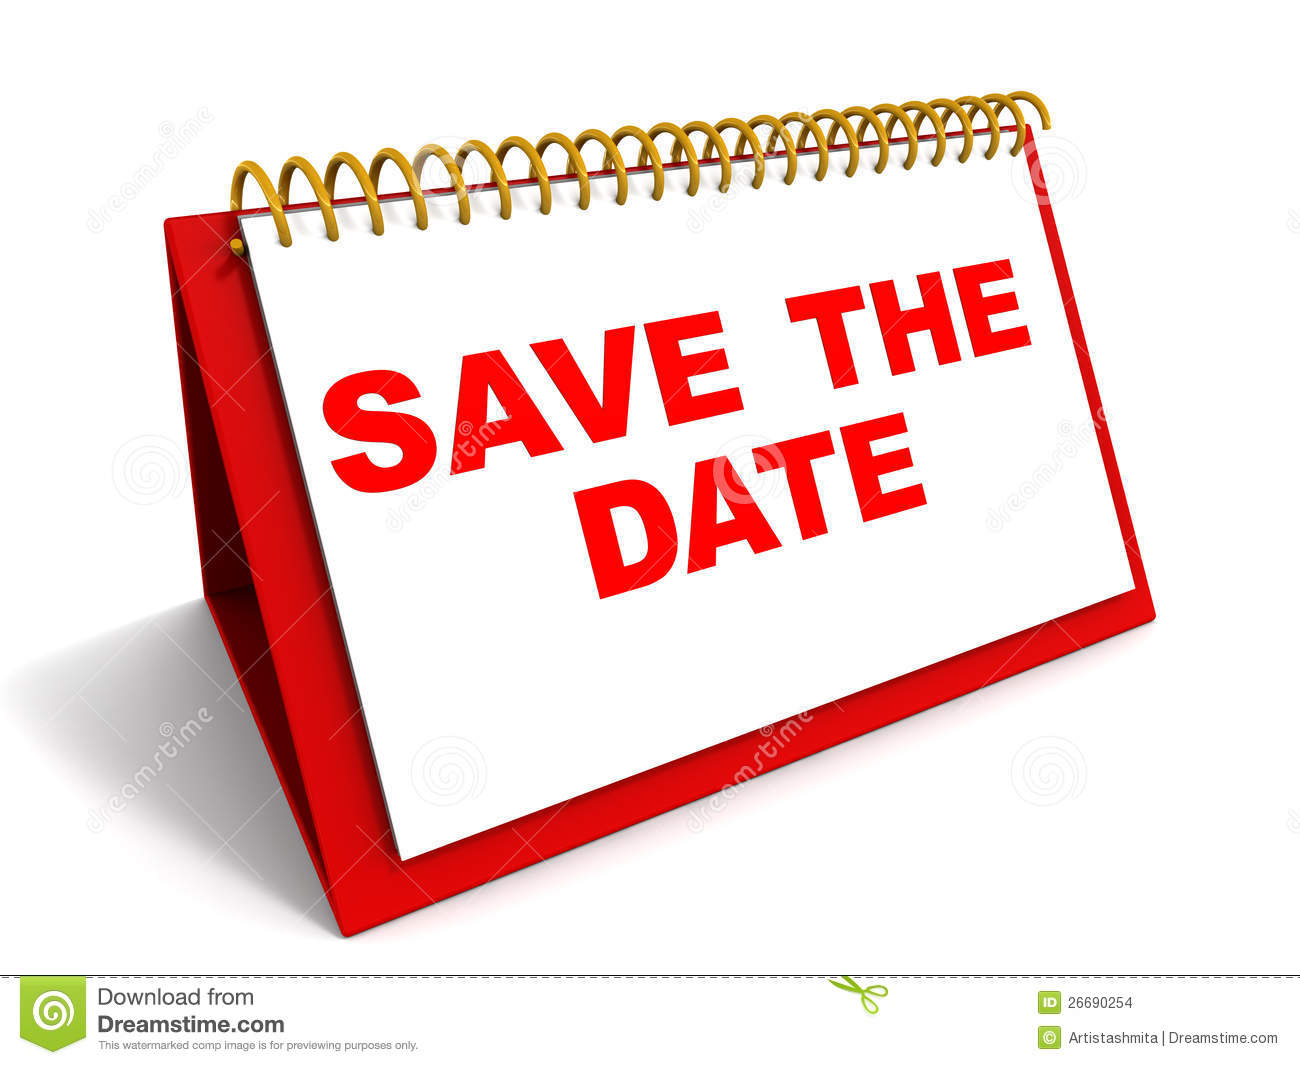 Words Save The Date On A Calender In Red-Words Save The Date On A Calender In Red Reminder And Date Saving-19